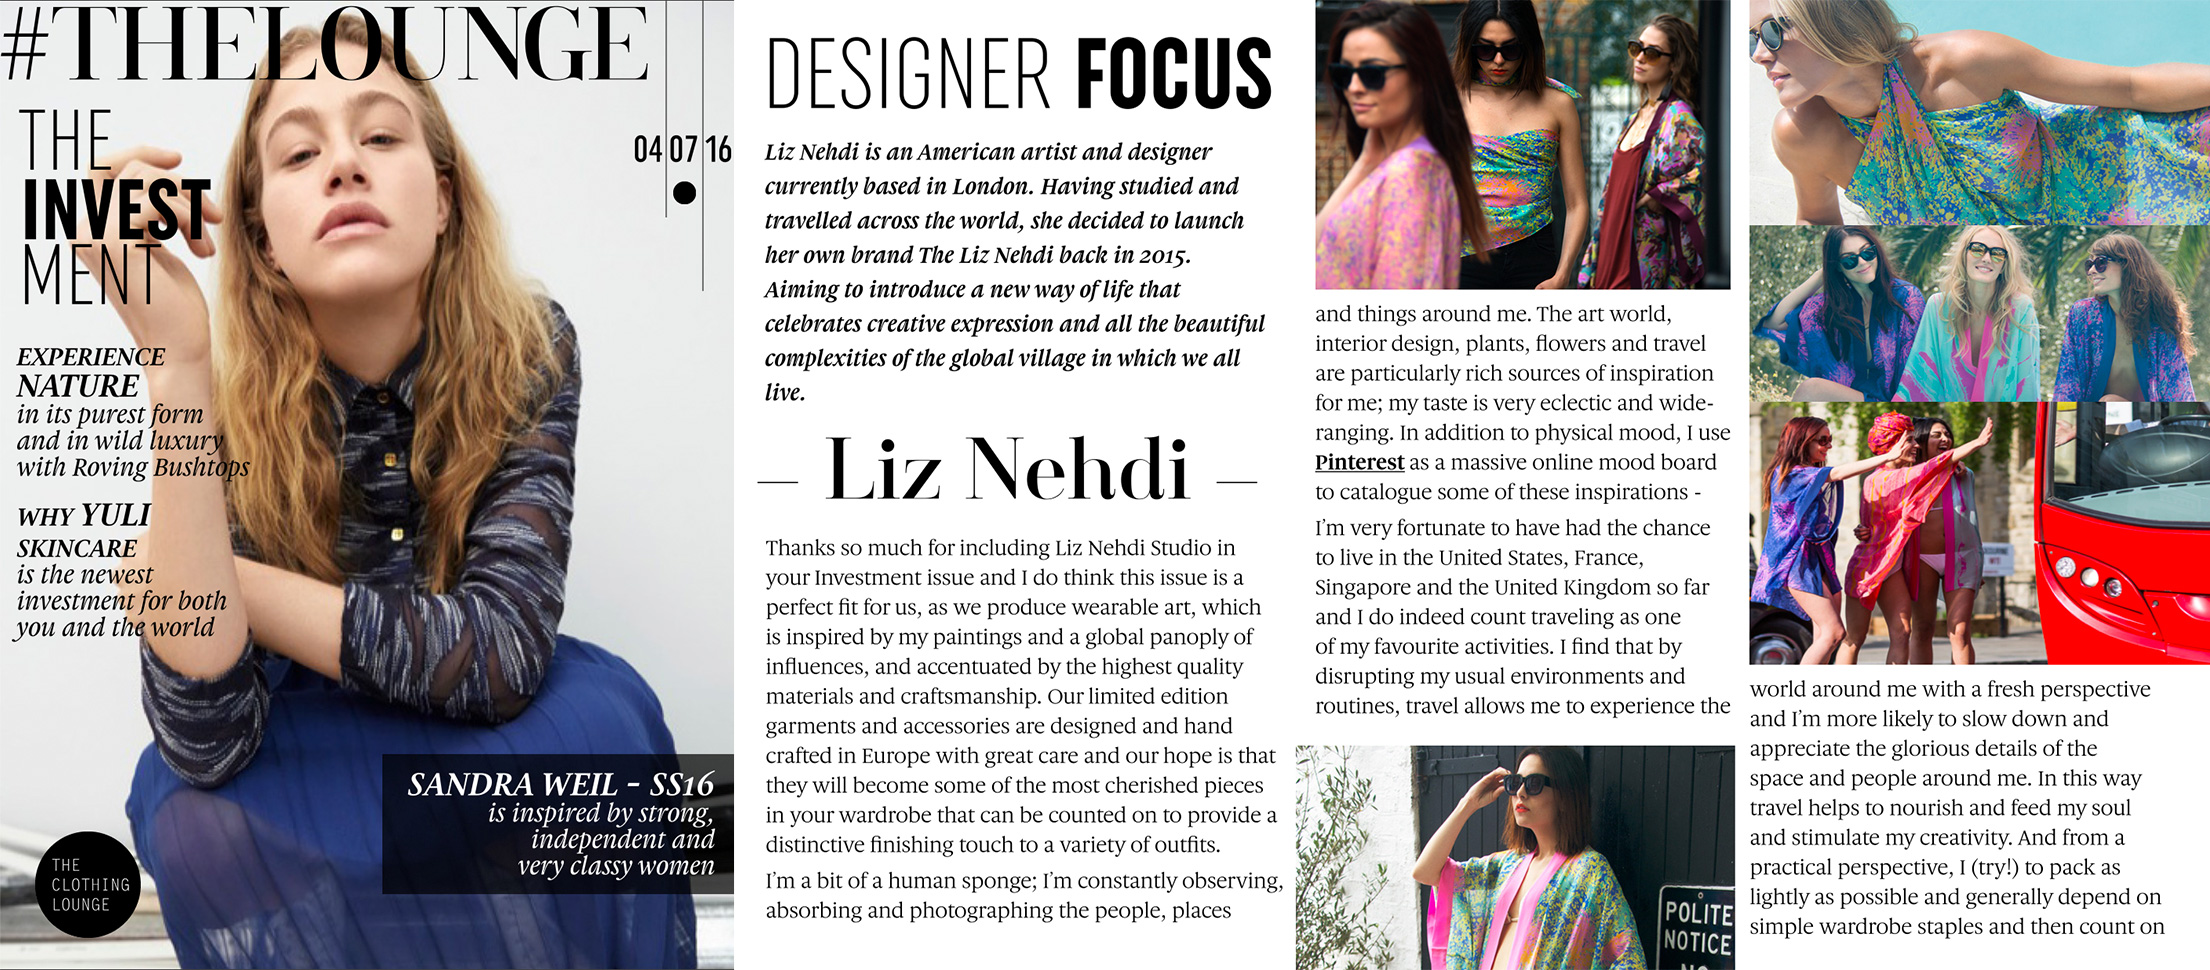 LizNehdi_Press_TheLoungeMagazine_Summer2016.jpg